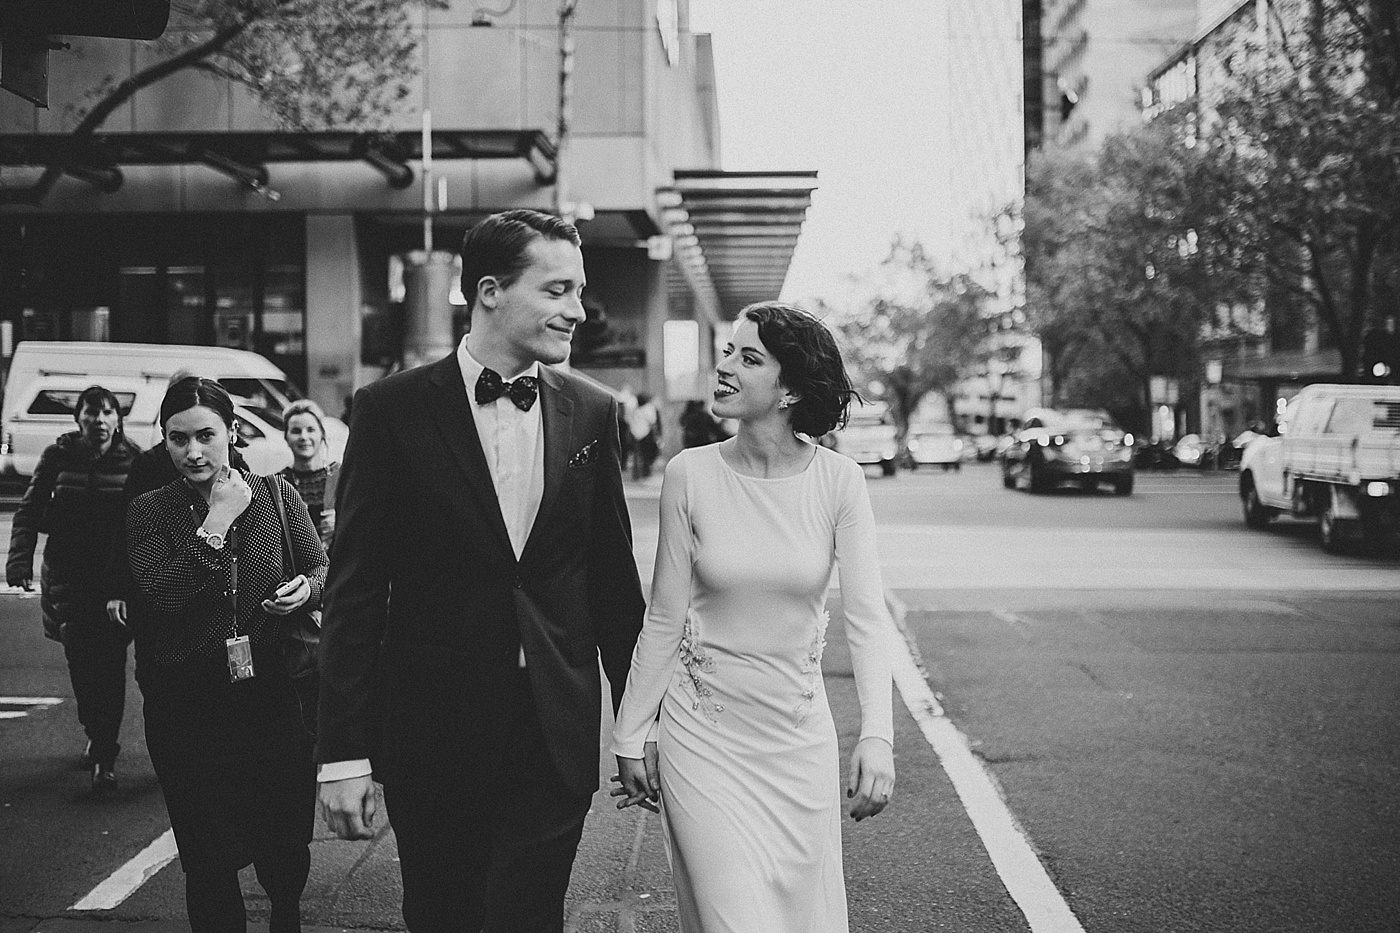 Emma&Morgan_Melbourne-Vintage-Elegant-Fun-CBD-Small-Elopement-Wedding_Melbourne-Wedding-Photography-47